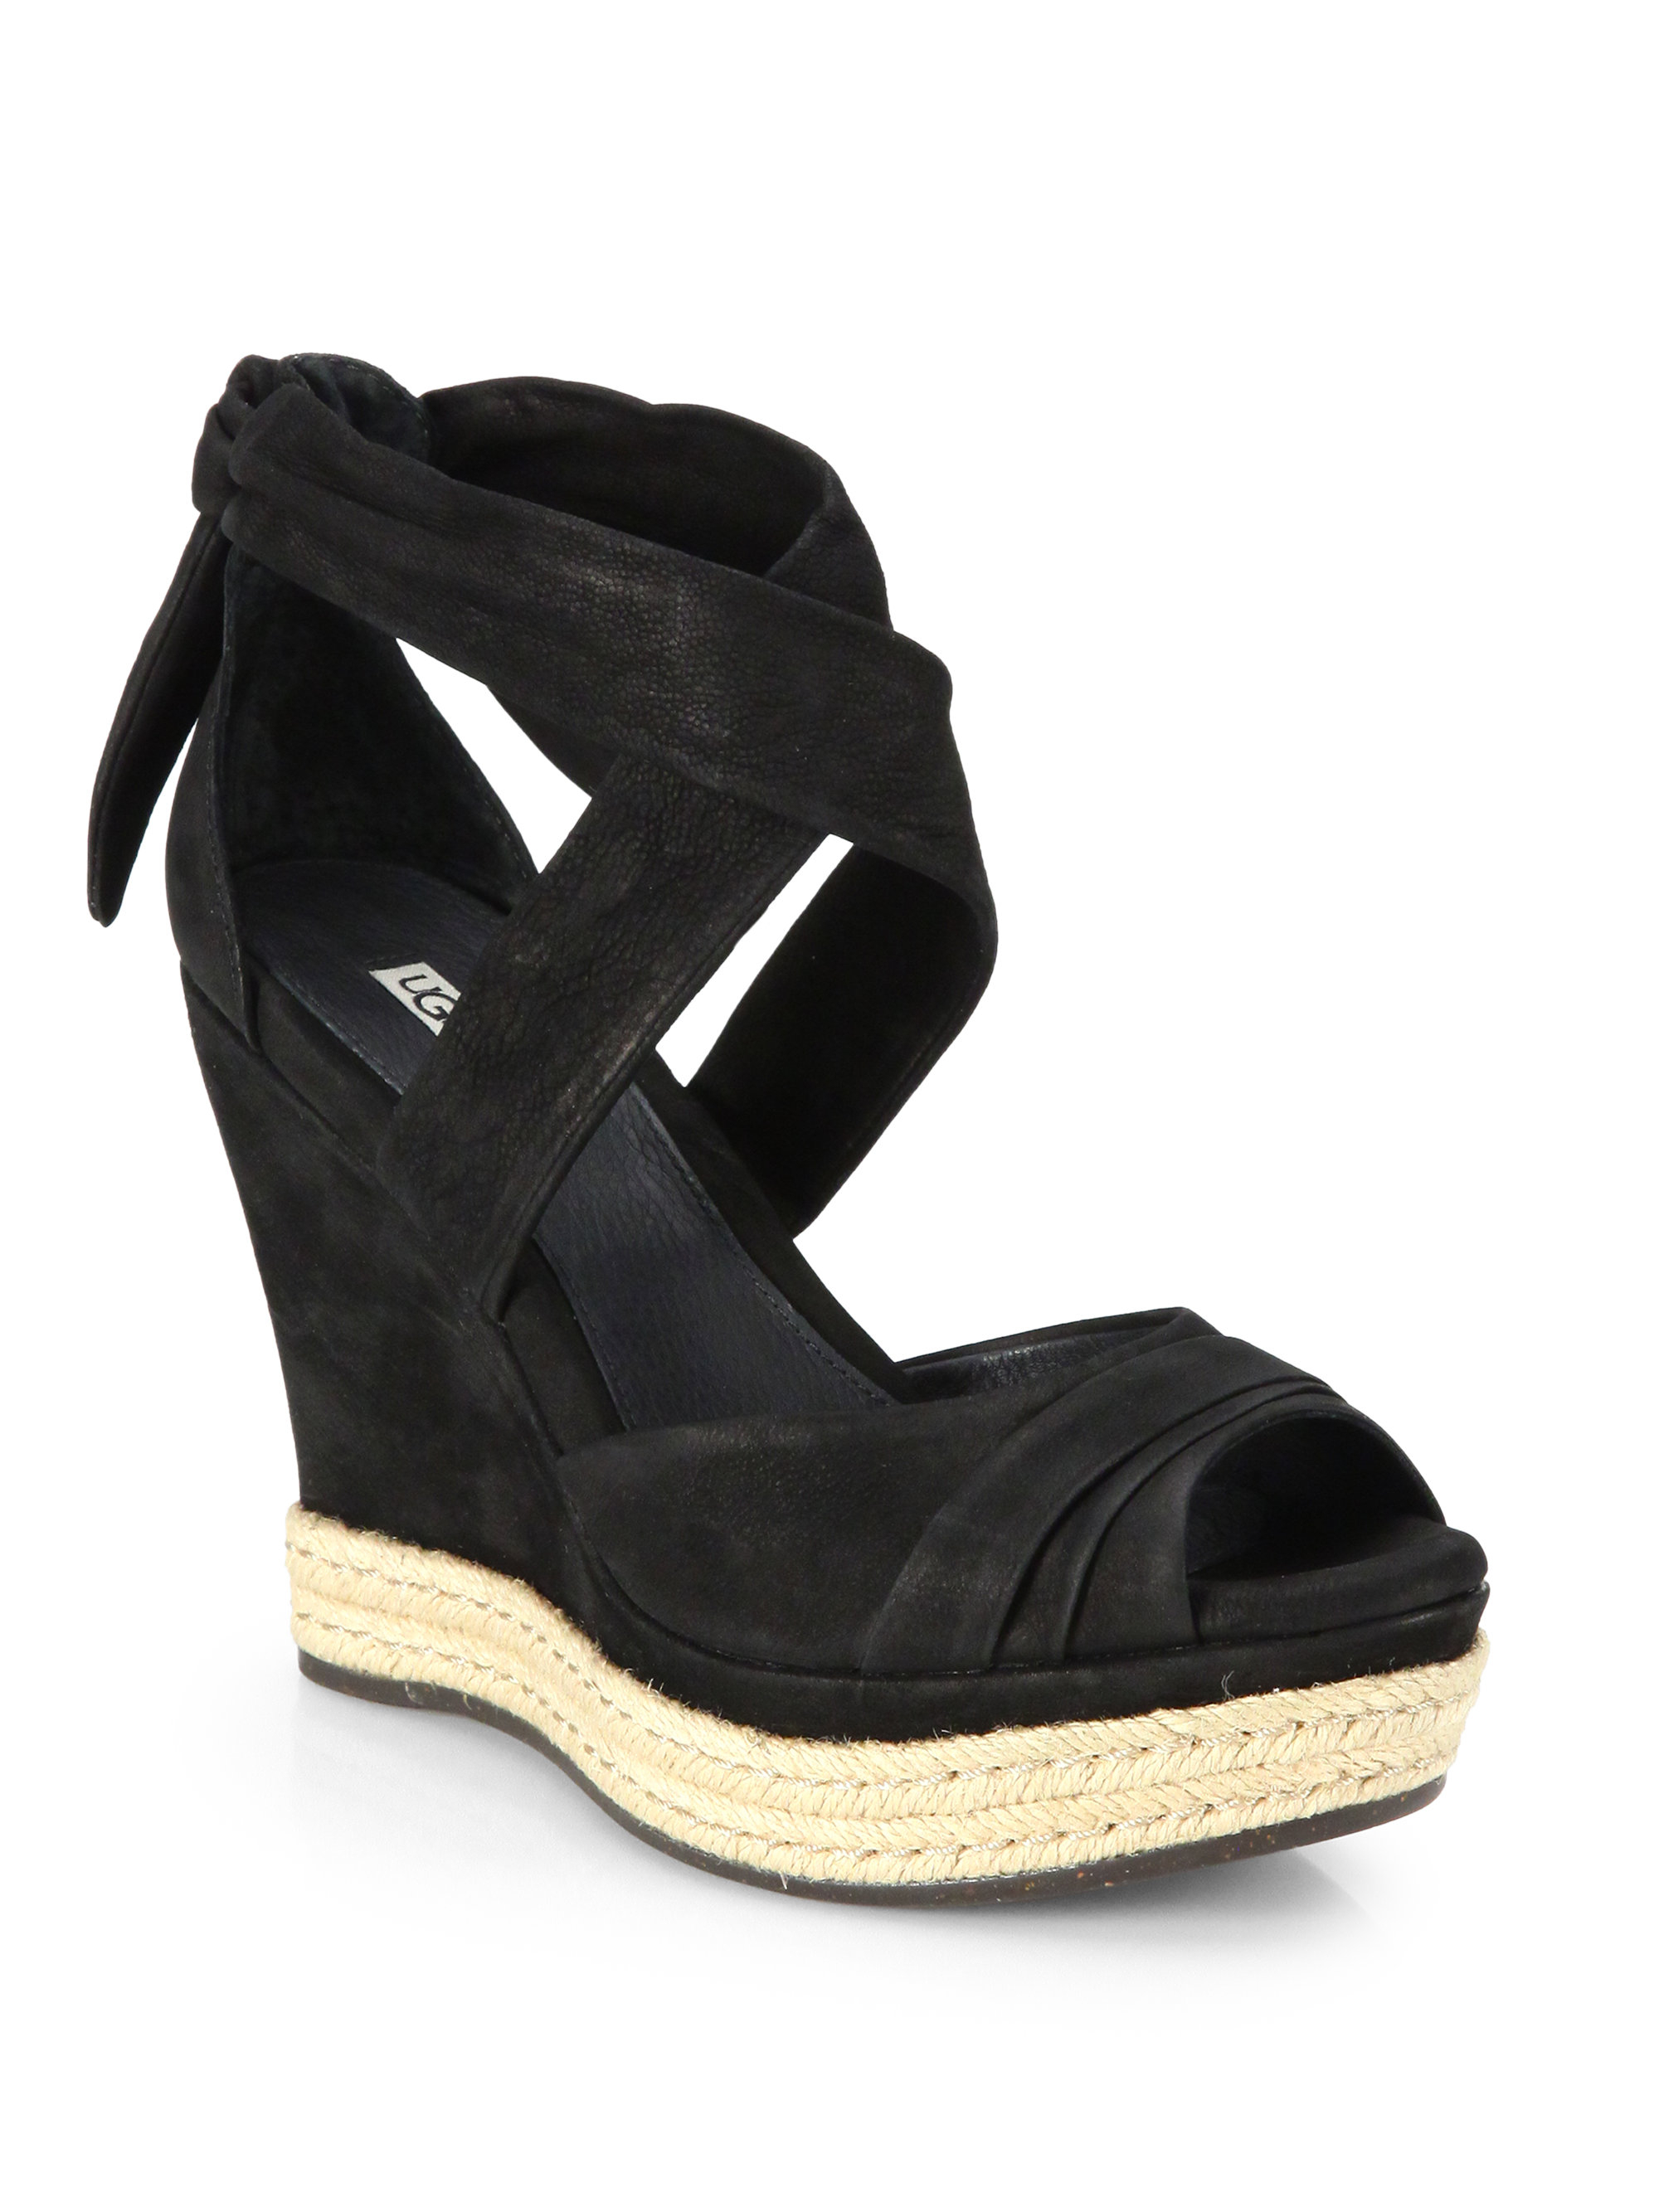 Ugg Lucy Suede Tie Up Wedge Sandals In Black Lyst